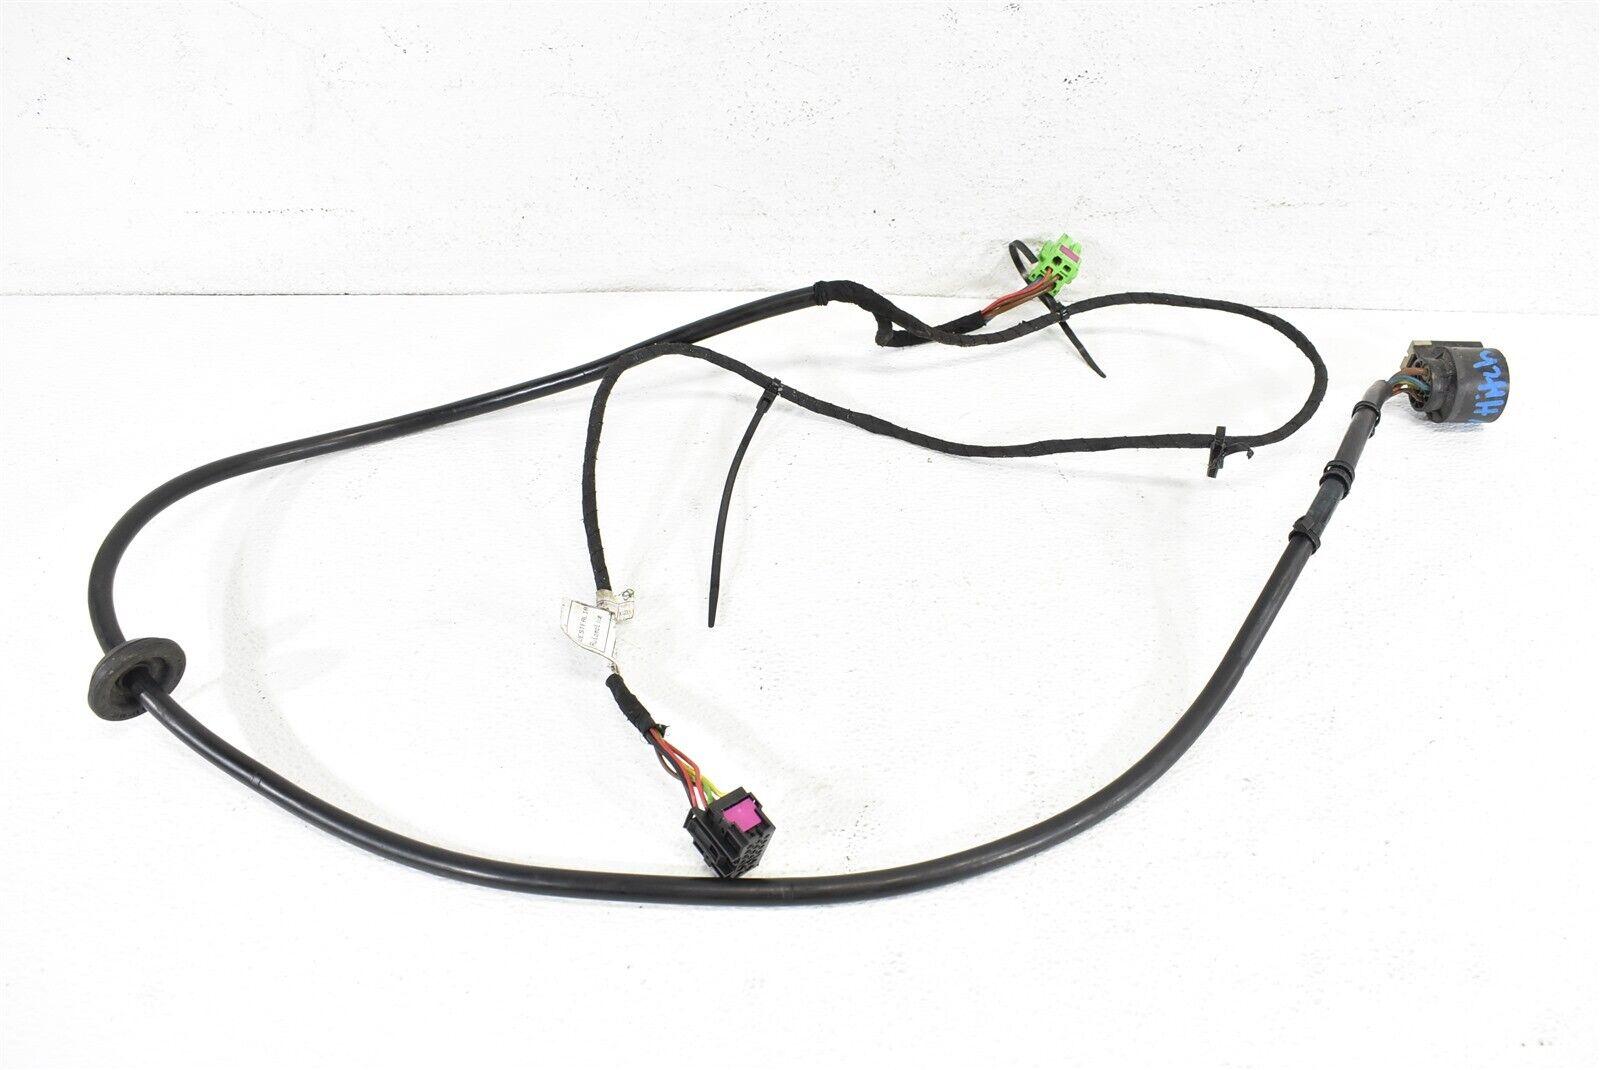 Porsche Cayenne Towing Tow Hitch Wiring Harness